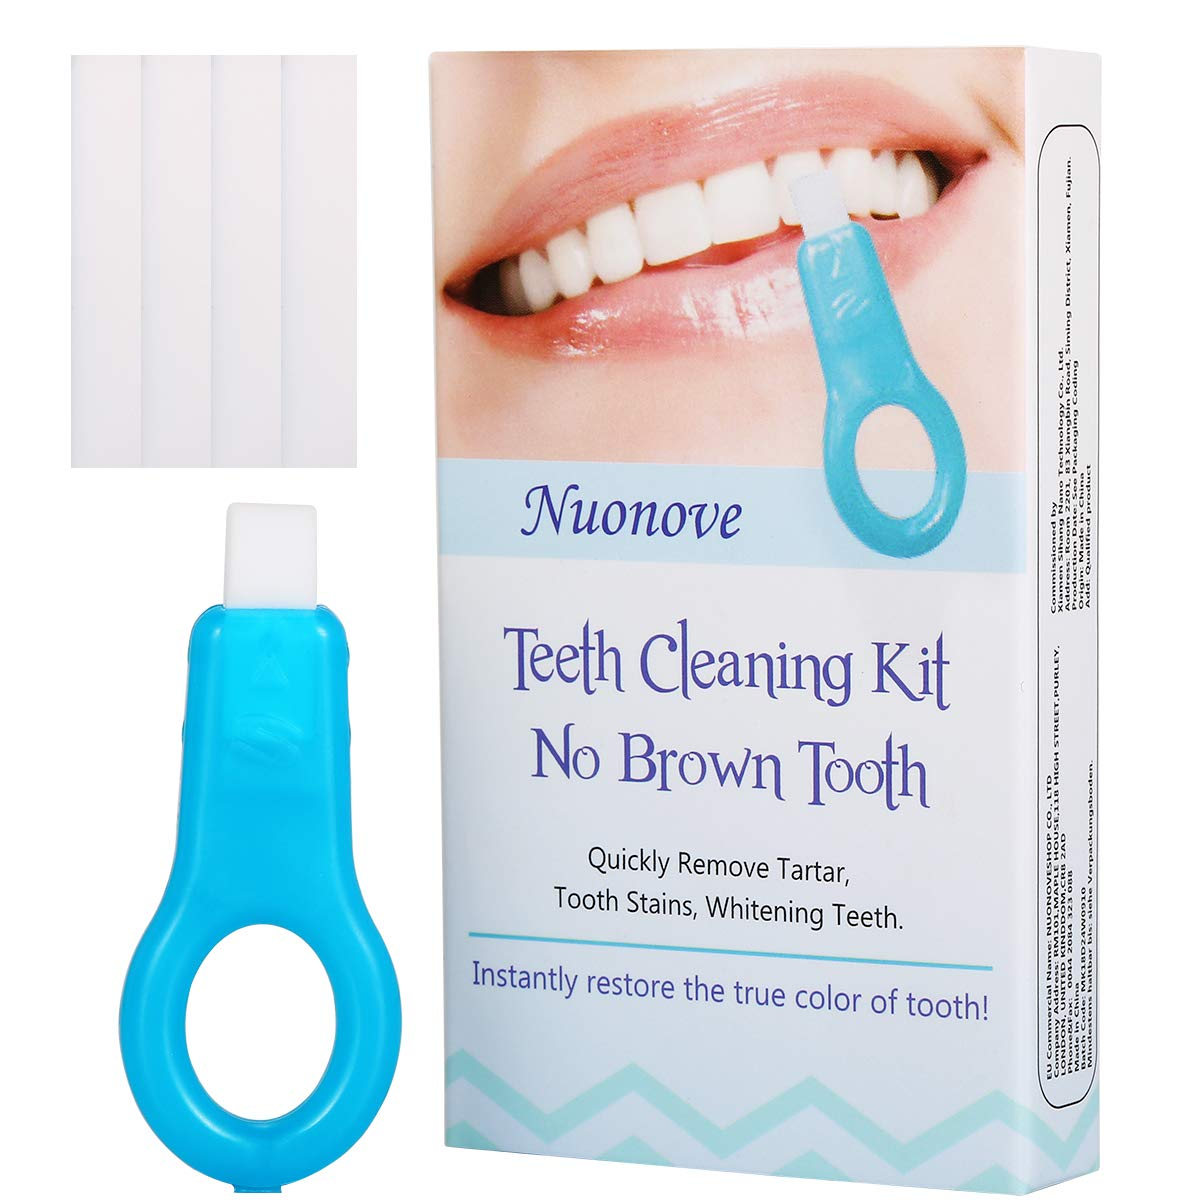 Faithful Clean Your Teeth With Jet Teeth Cleaner Quality First Oral Care